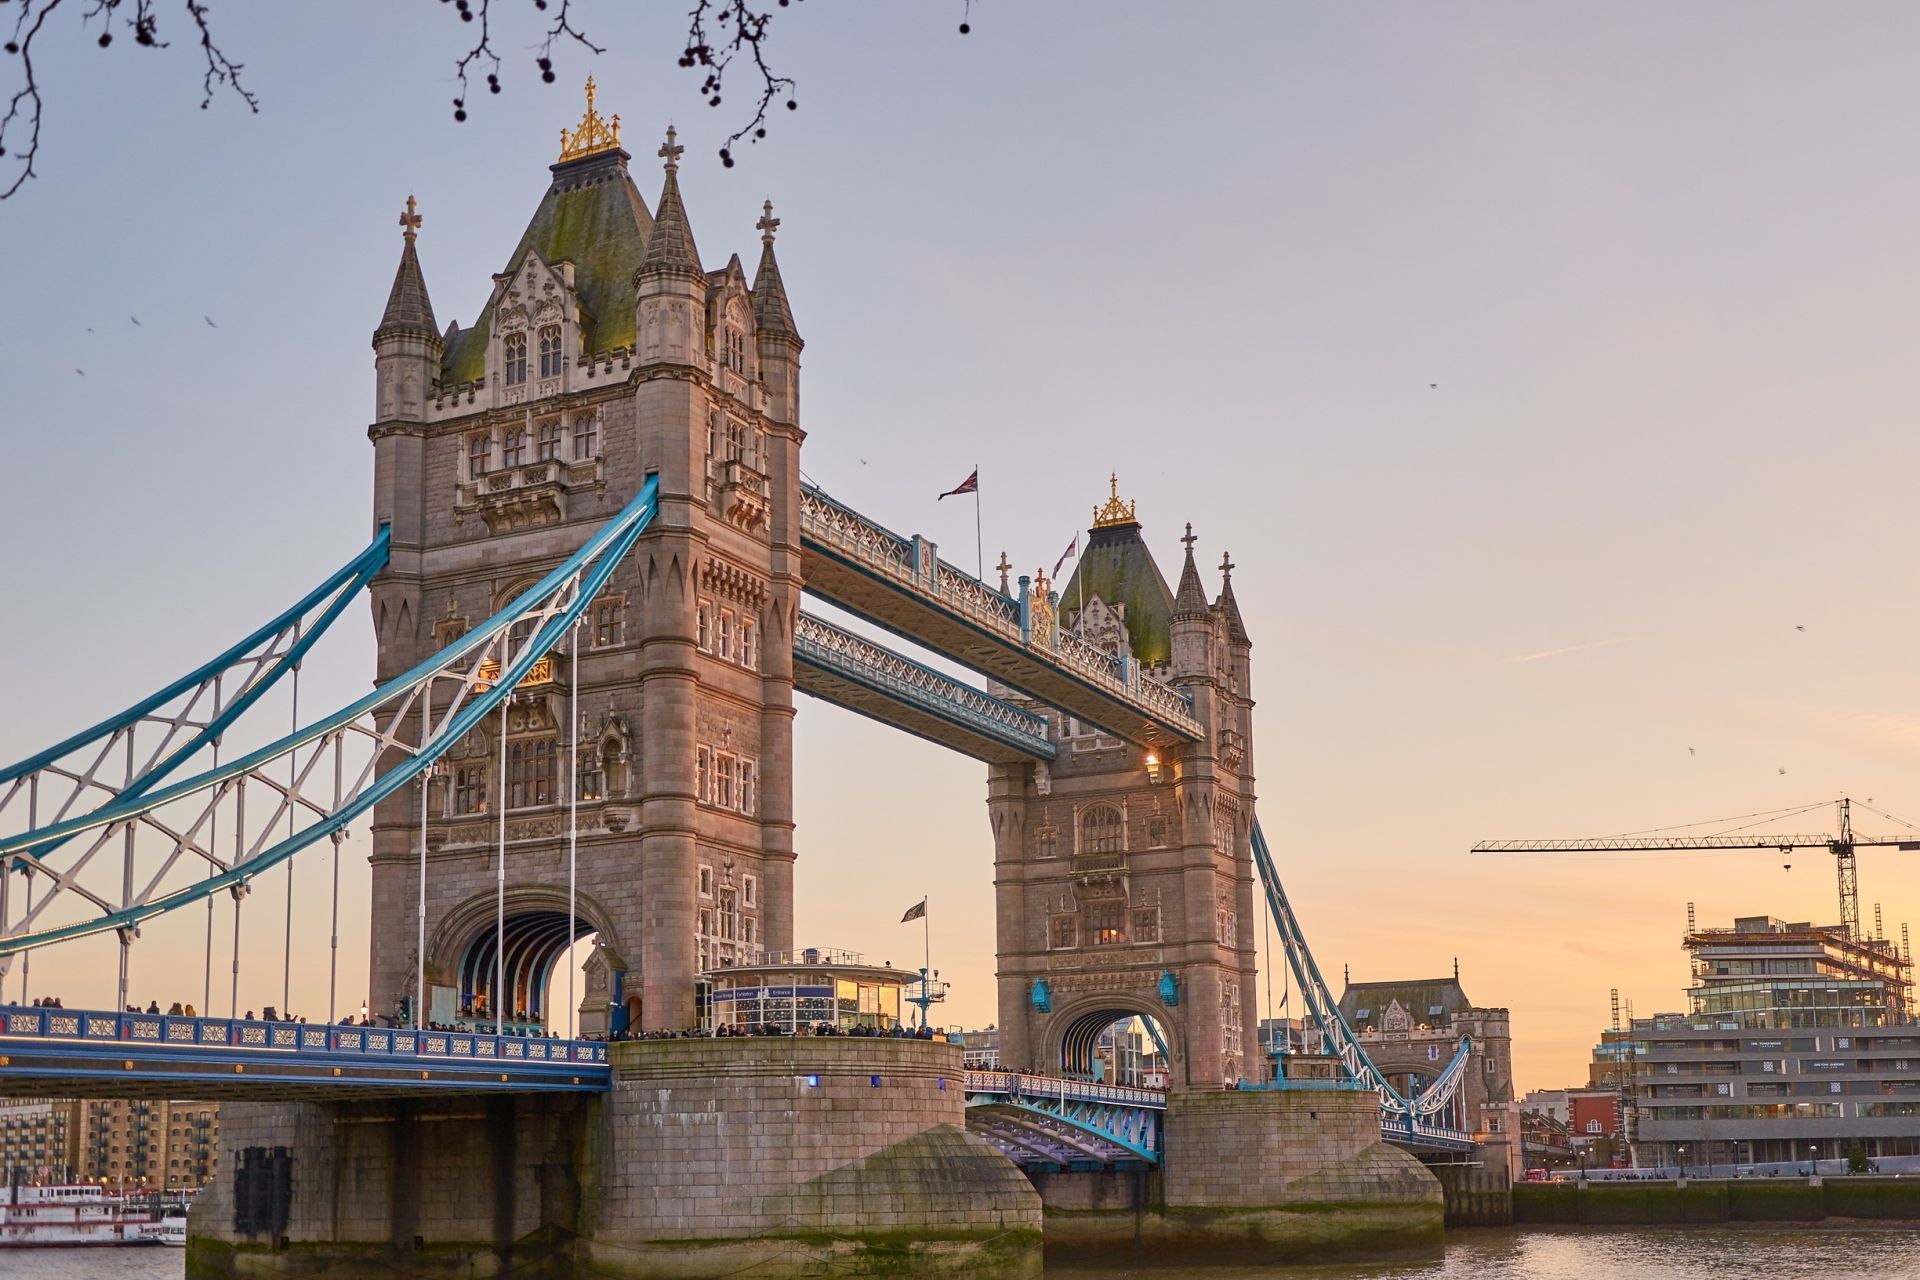 London Tower Bridge. Photo Credit: ©Raw2Jpeg/Pixabay.